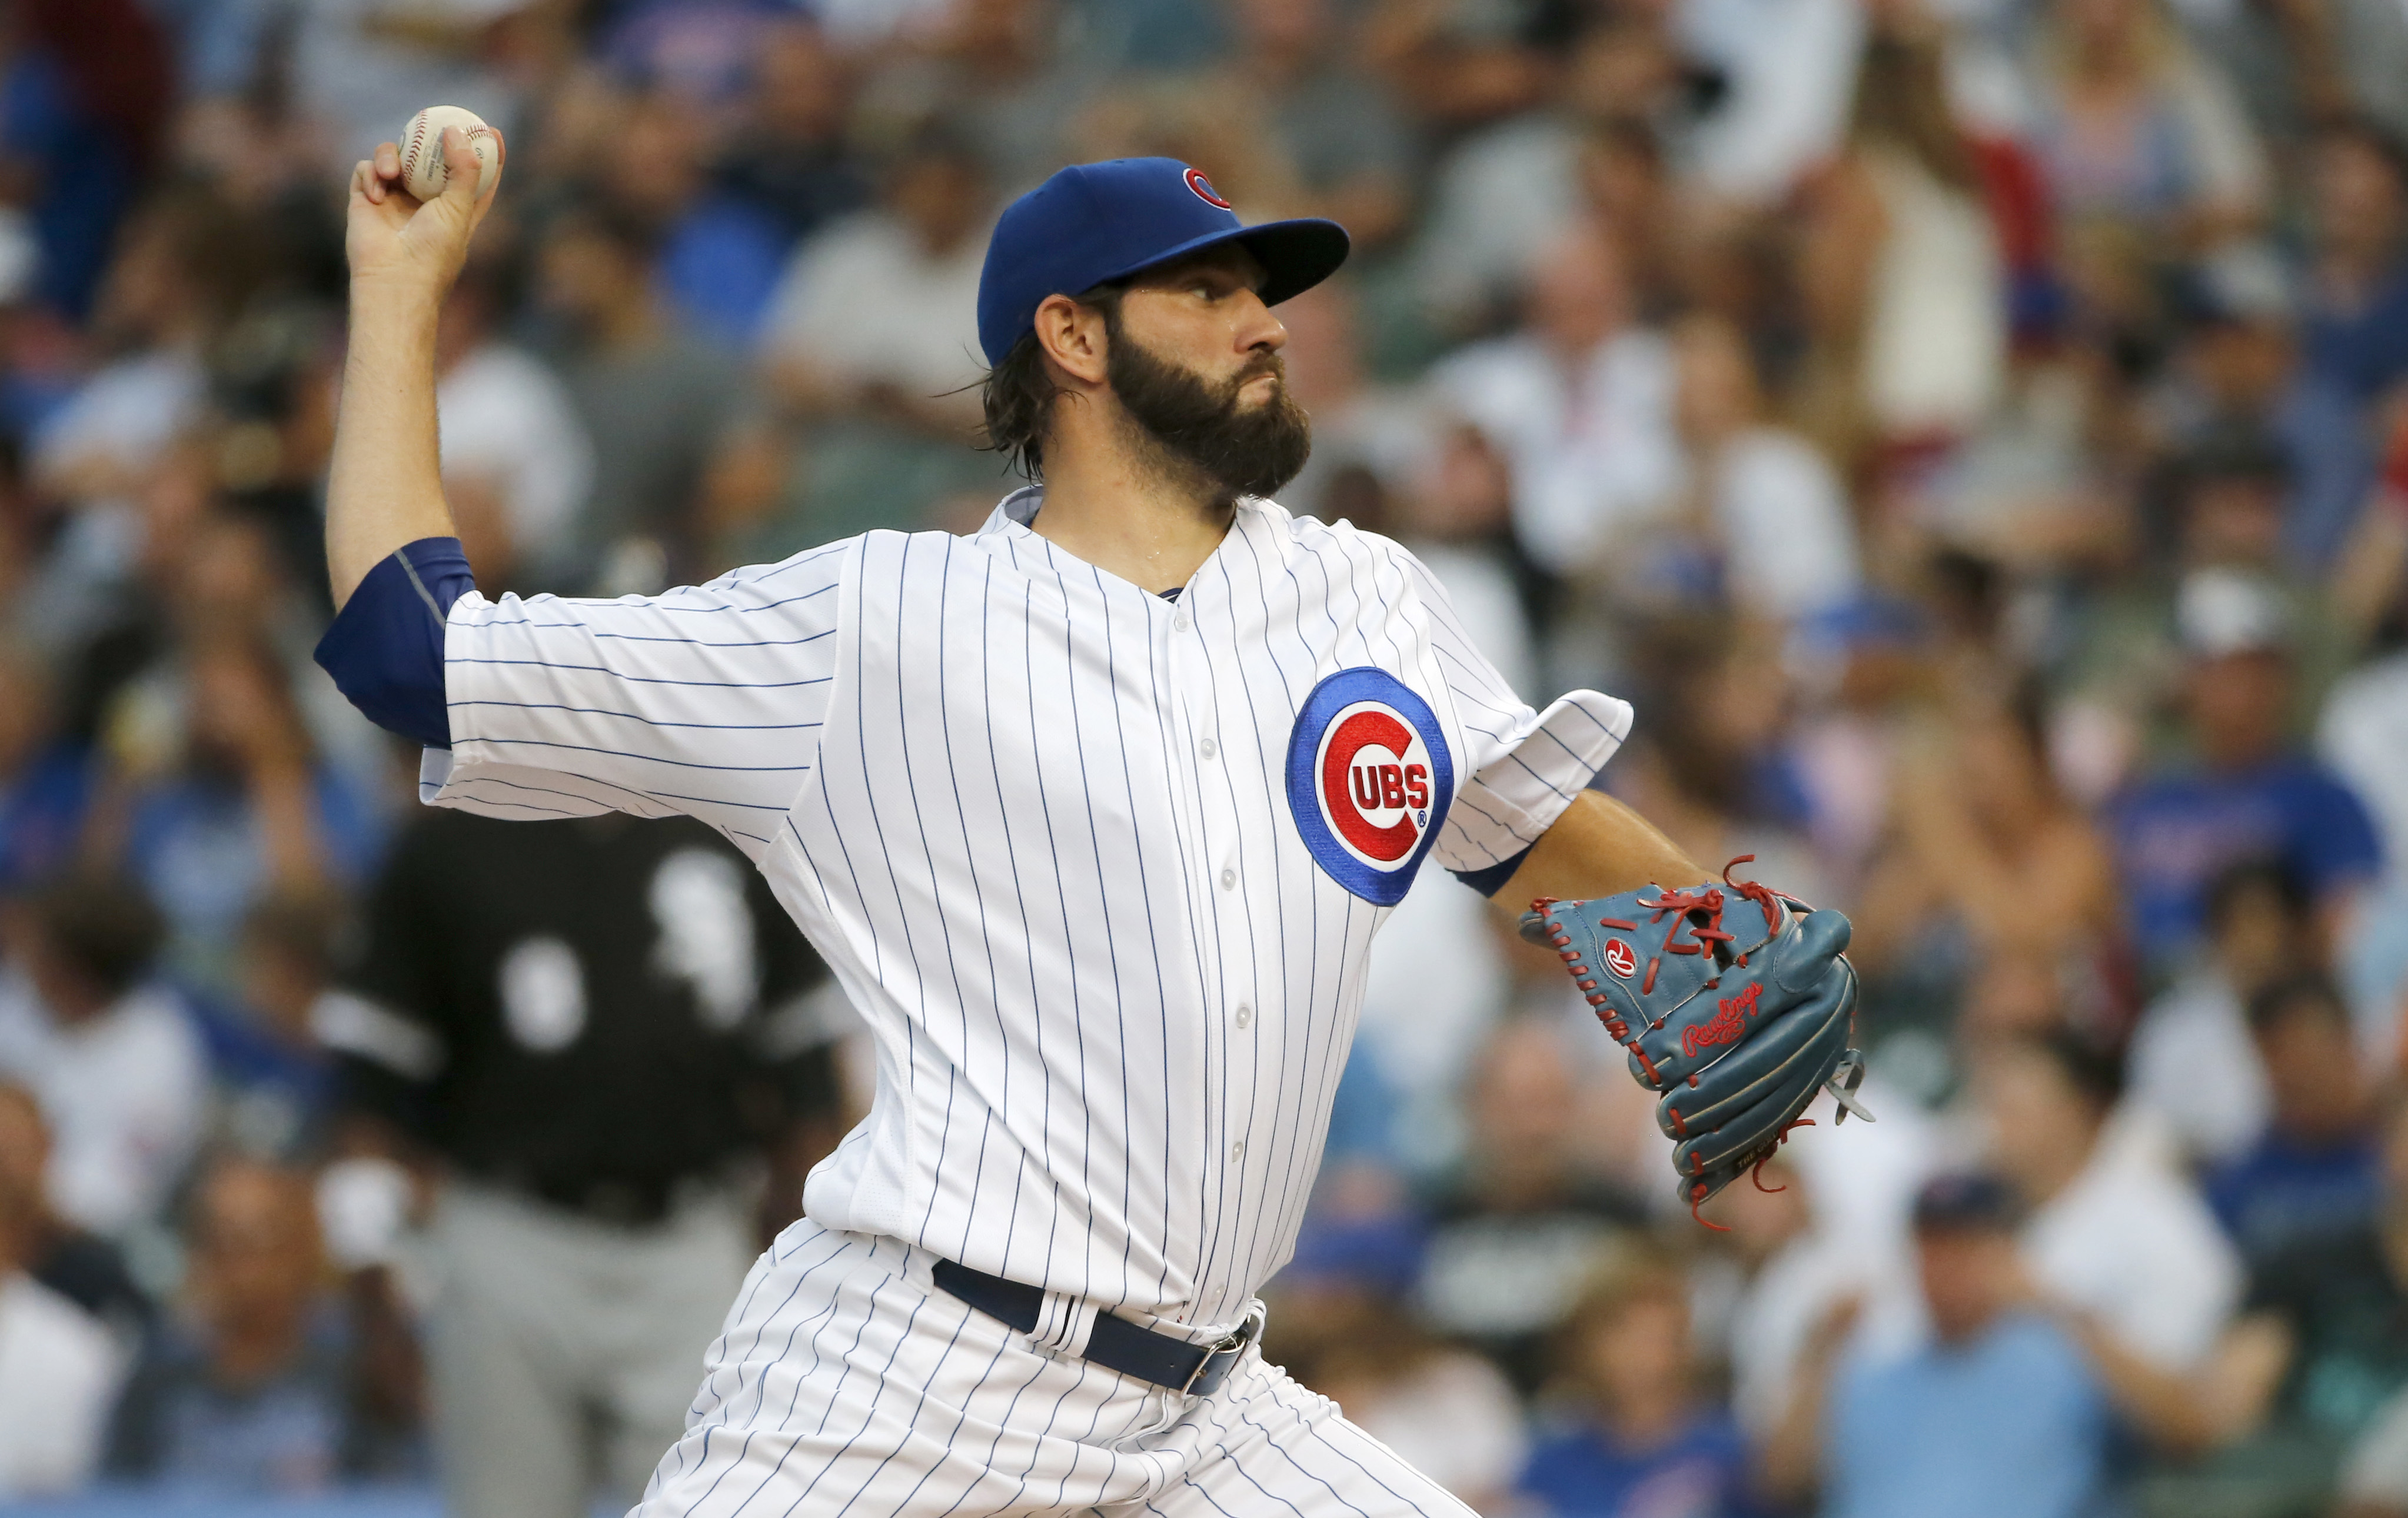 Chicago Cubs starting pitcher Jason Hammel winds up during the first inning of a baseball game against the Chicago White Sox on Wednesday, July 27, 2016, in Chicago. (AP Photo/Charles Rex Arbogast)